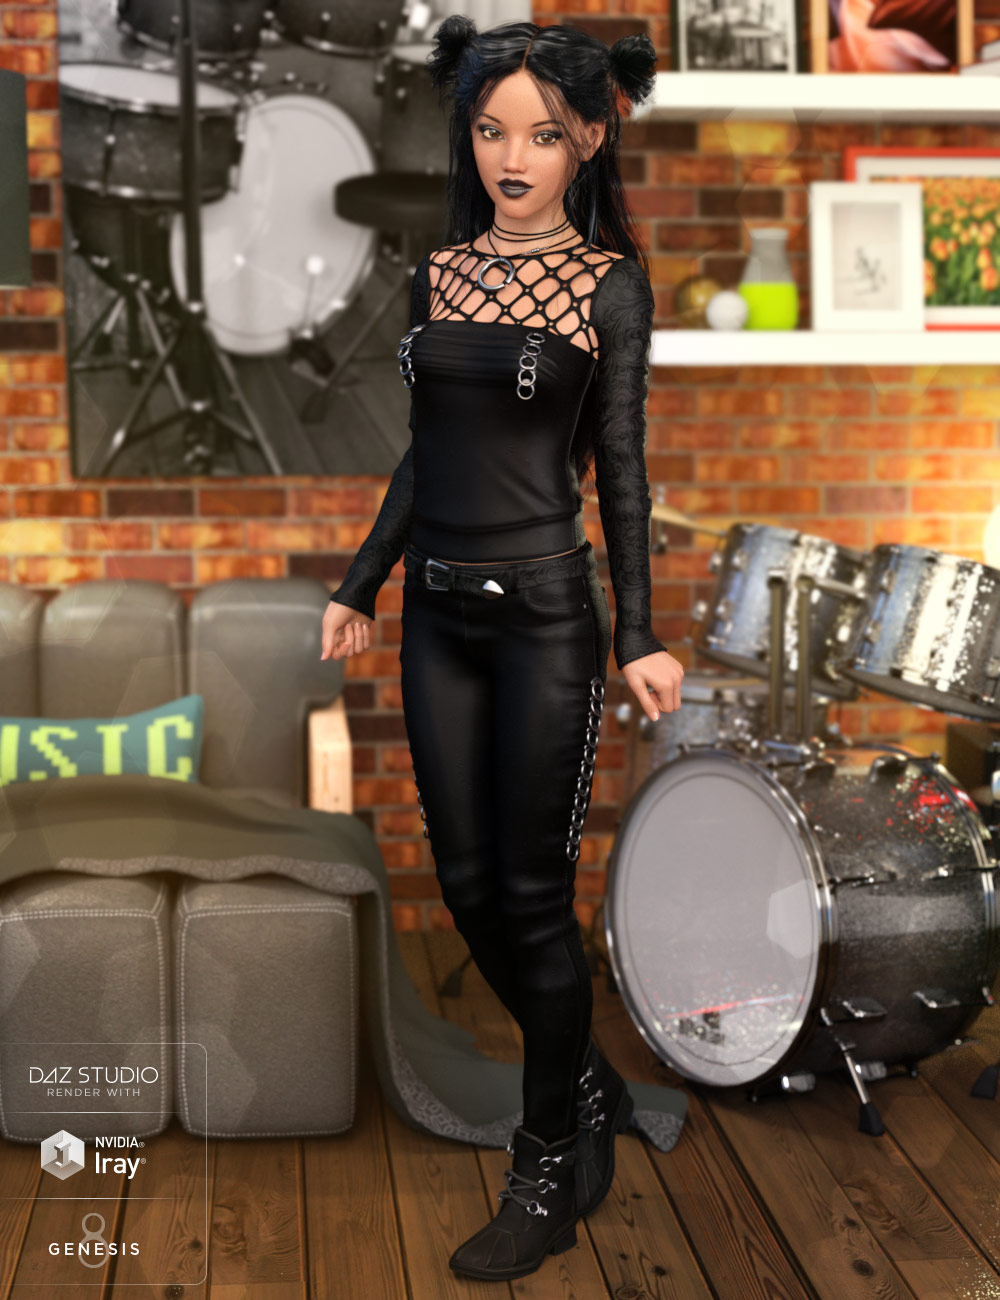 Goth Outfit for Genesis 8 Female(s) by: Anna BenjaminMada, 3D Models by Daz 3D